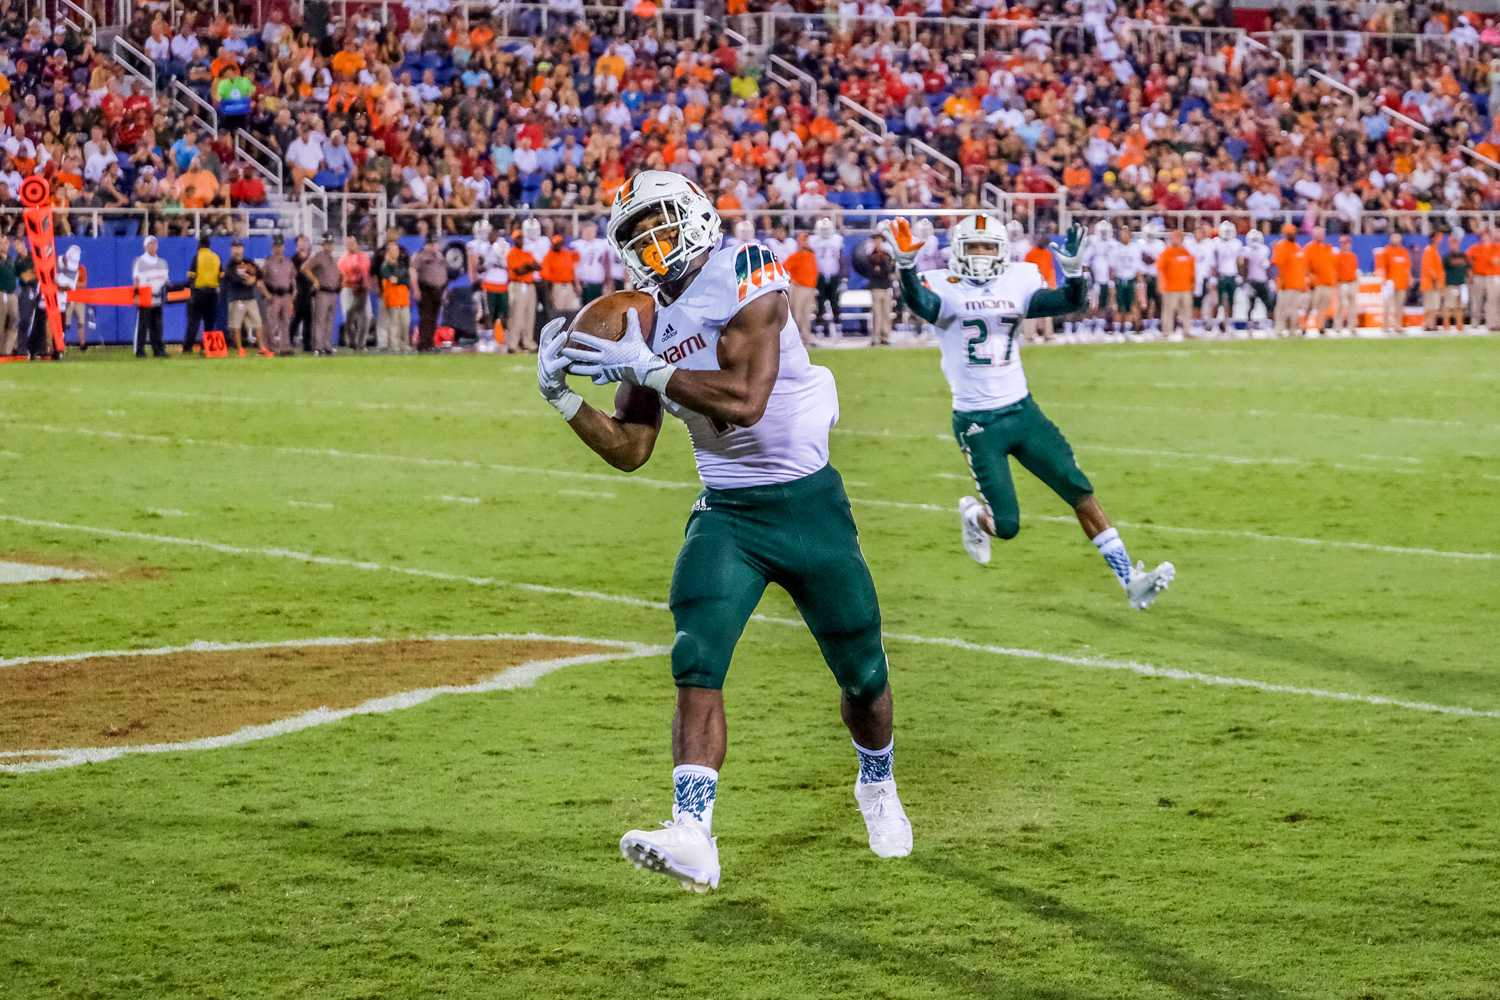 UM freshman running back Mark Walton (1), makes a four yard touchdown run during Friday's game. Mohammed F Emran | Staff Photographer